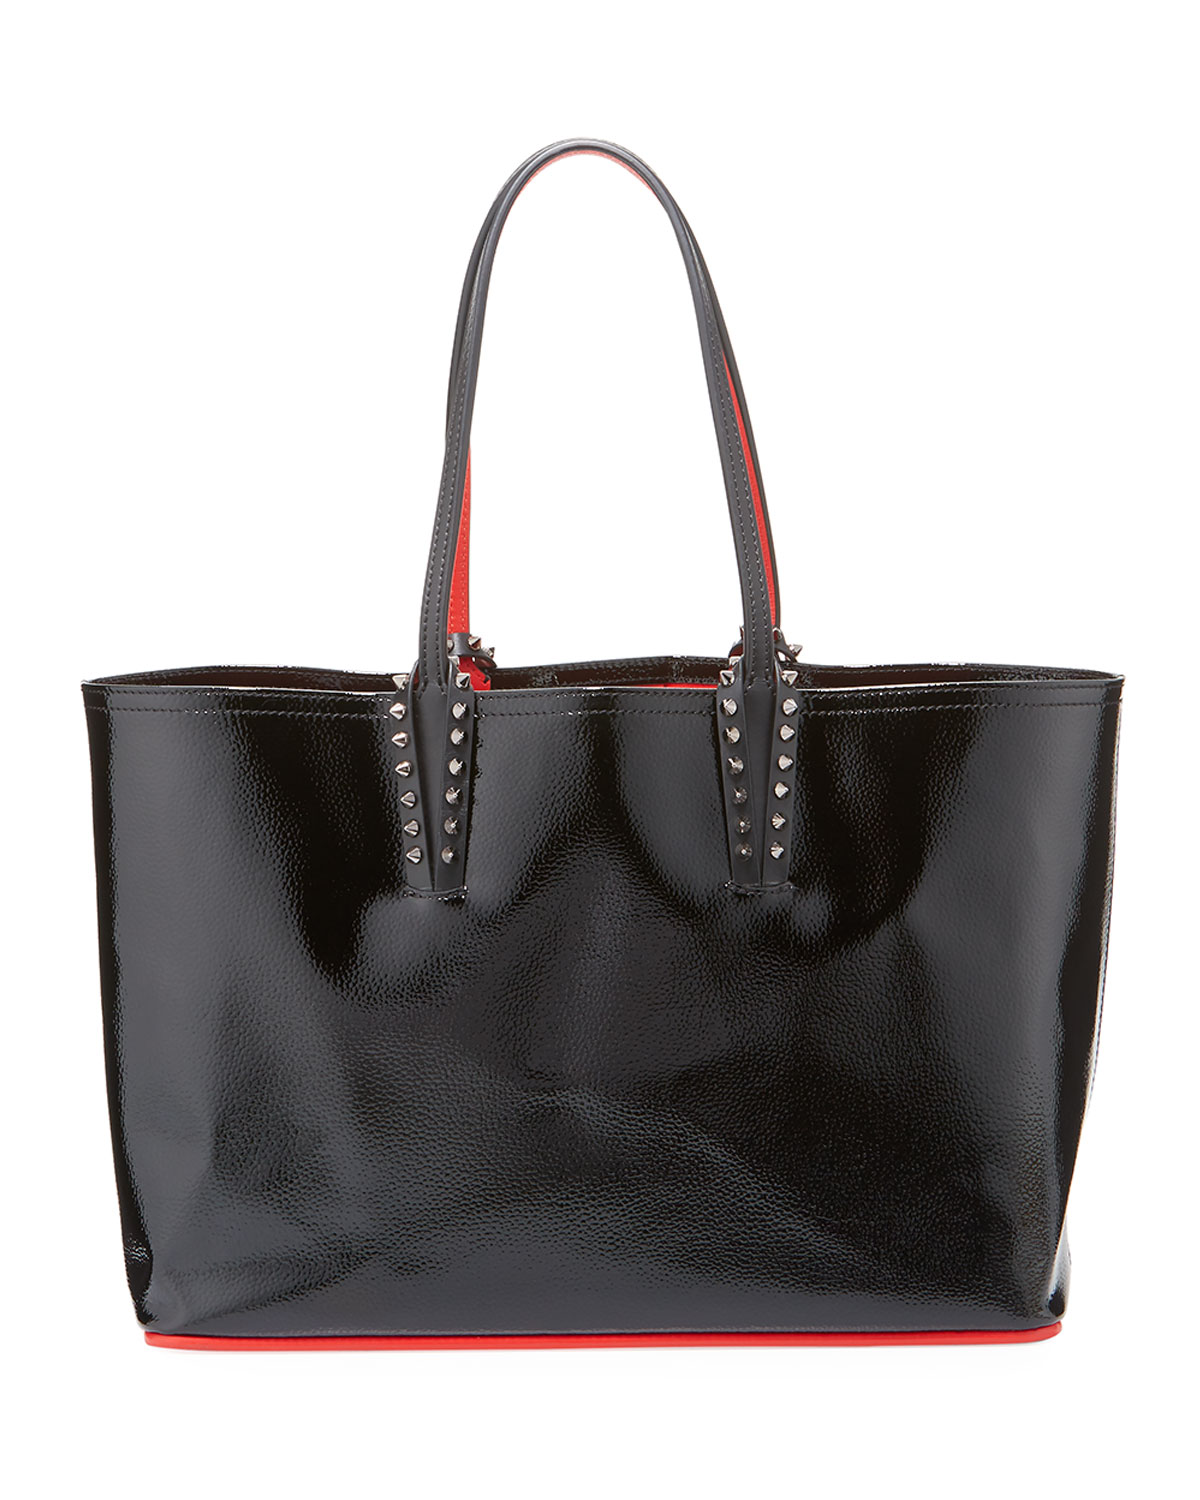 875abbd74655 Christian Louboutin Cabata Small Spiked Patent Tote Bag